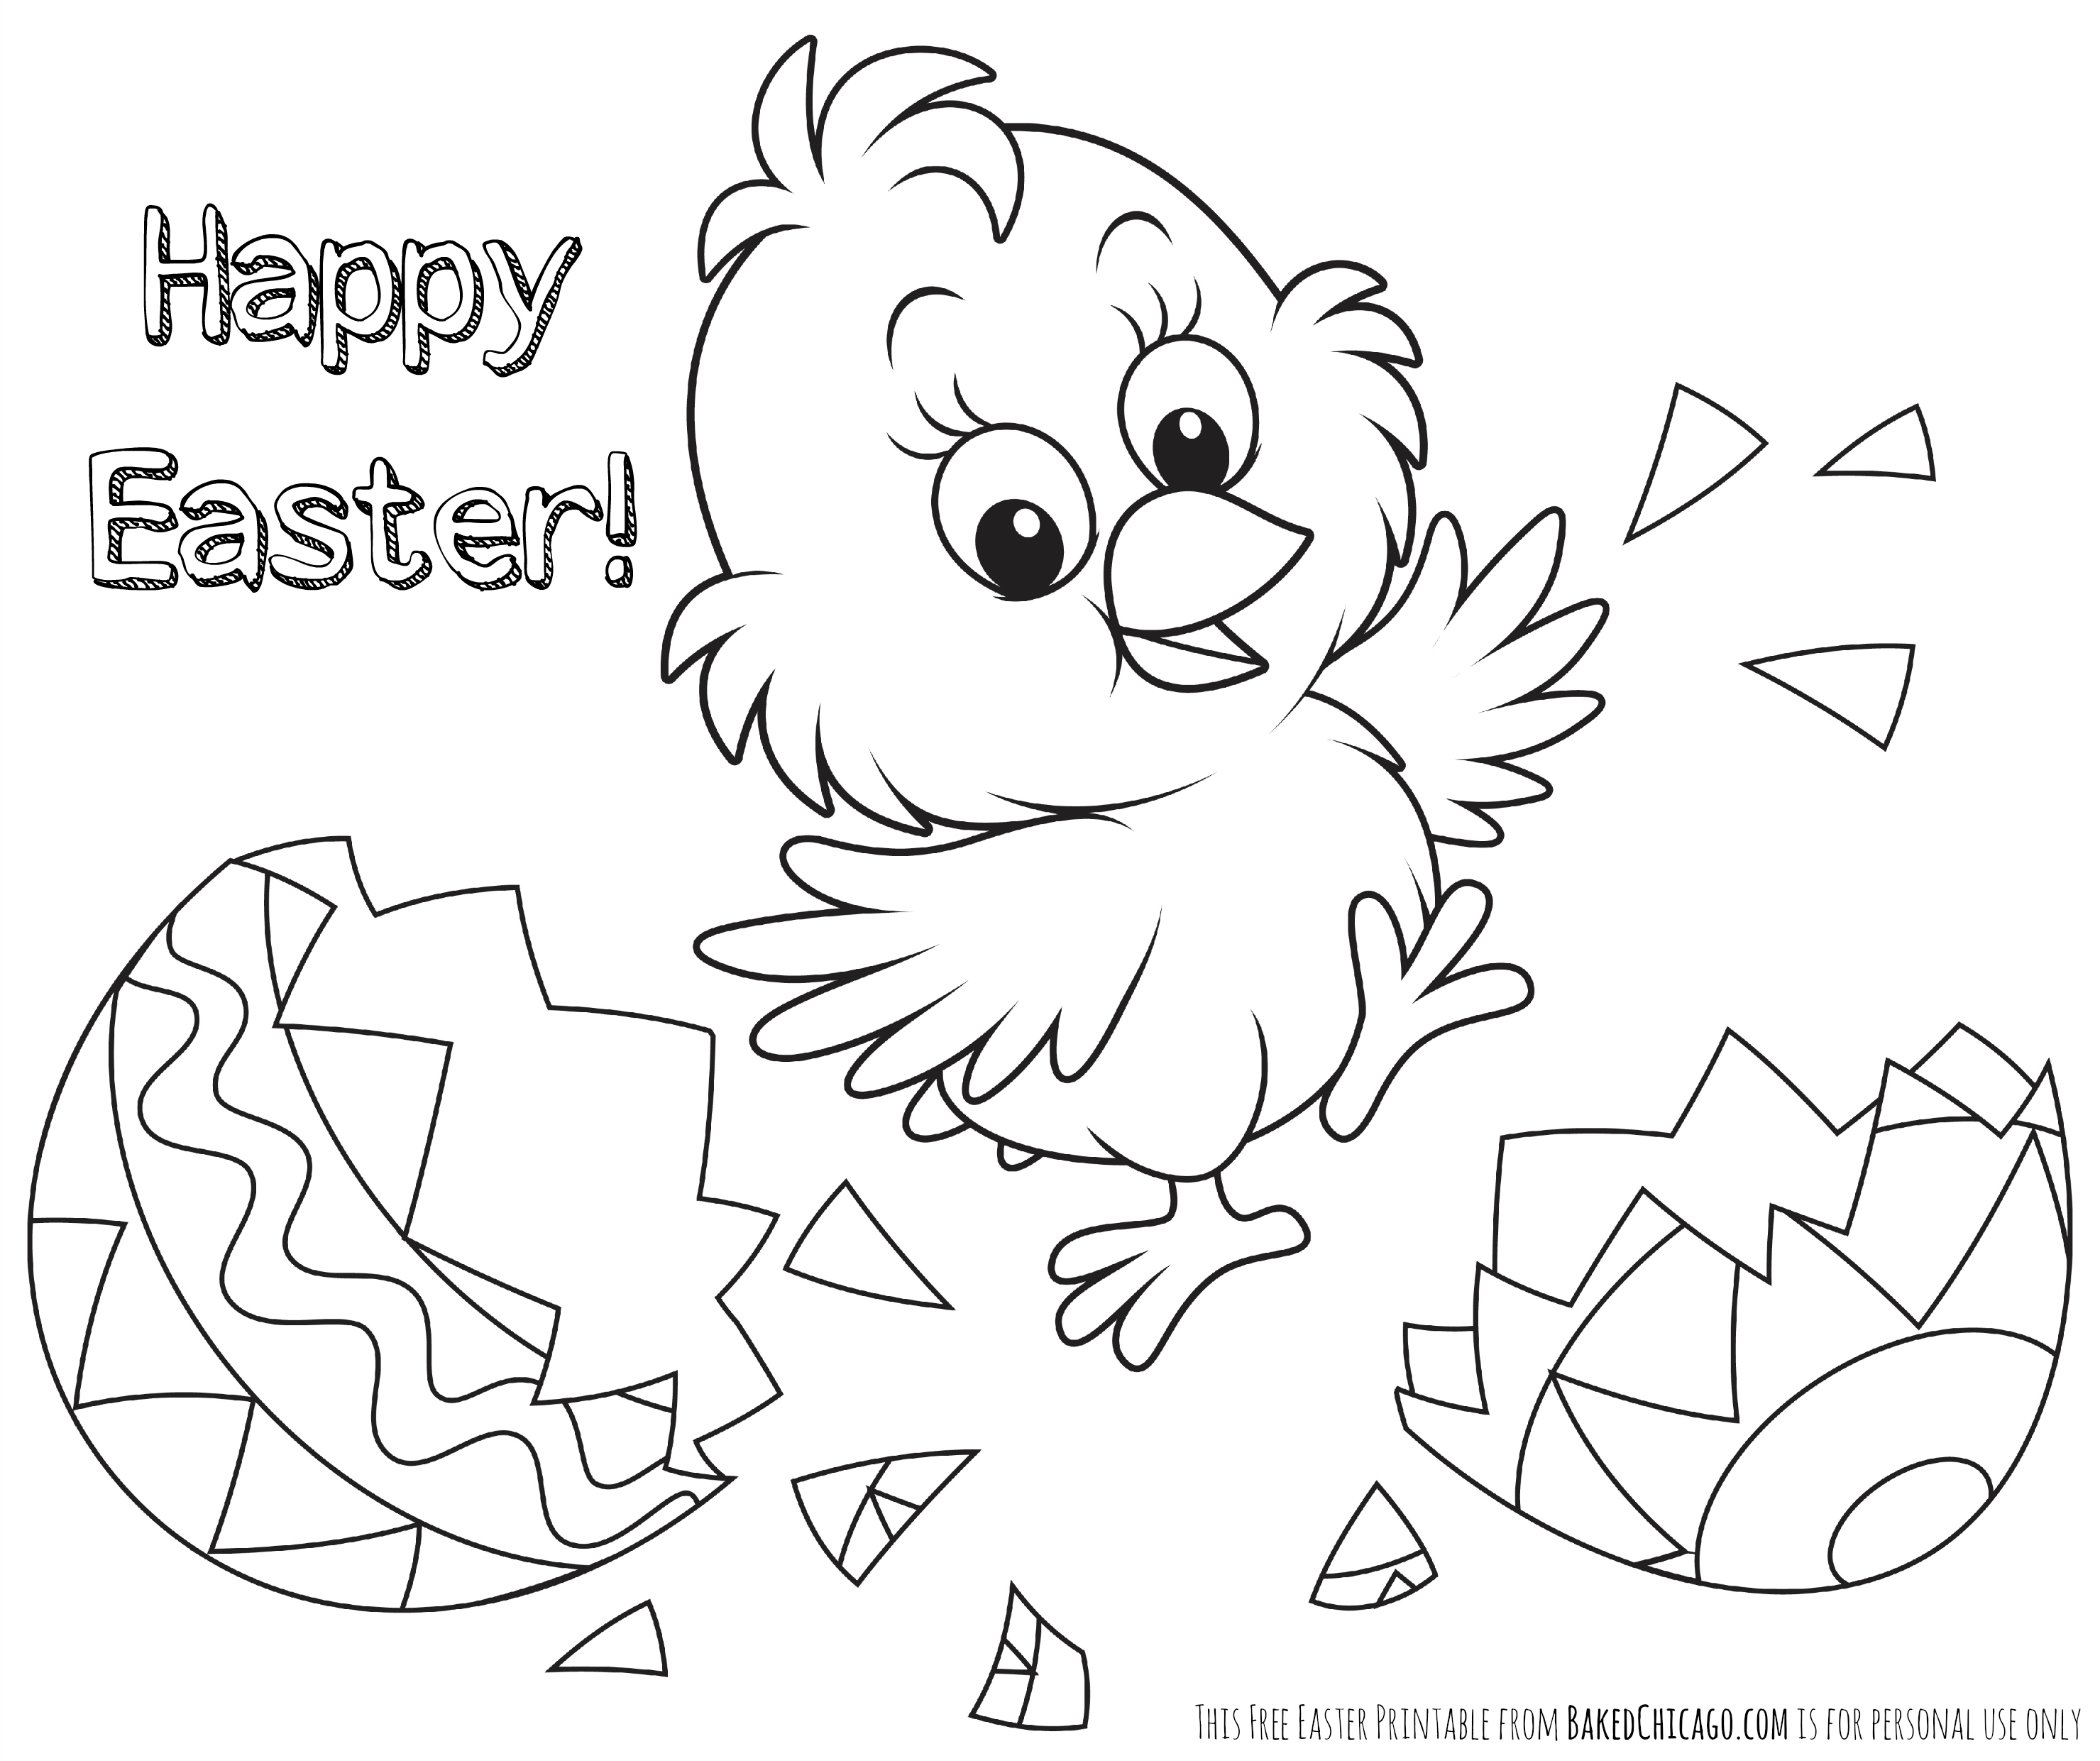 Easter Coloring Pages to Print Coloring Page Gallery Of Easter Basket Coloring Pages to Print Gallery